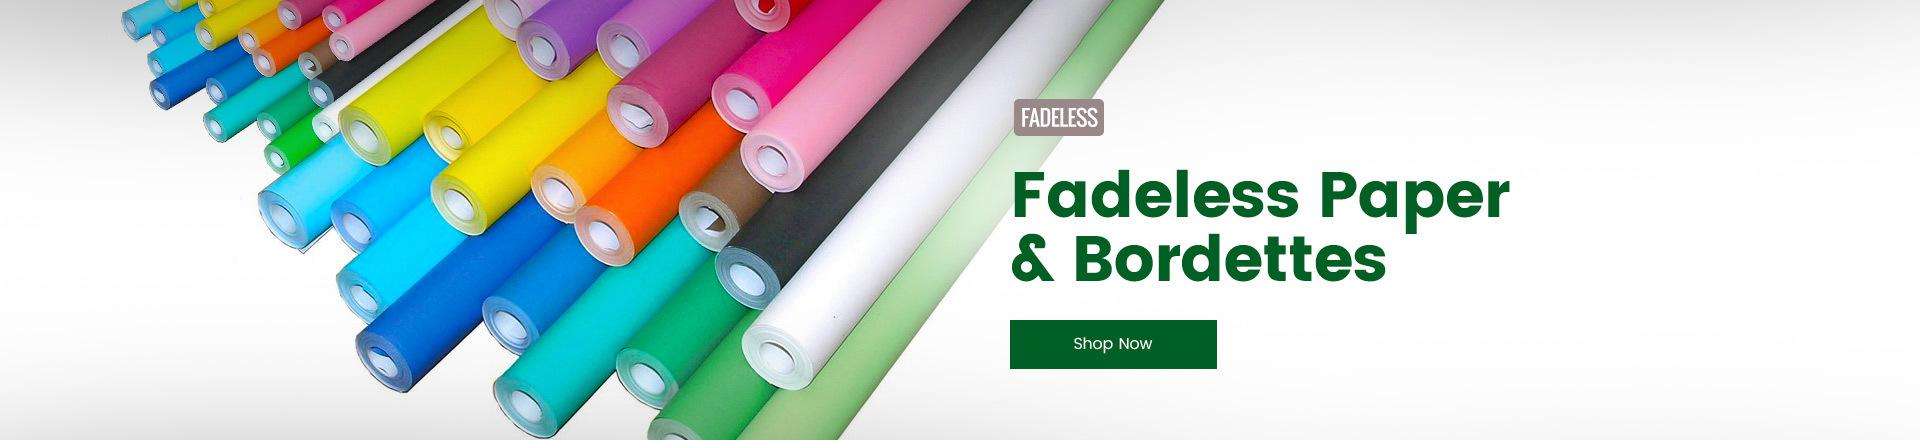 Fadeless Paper and Borderettes